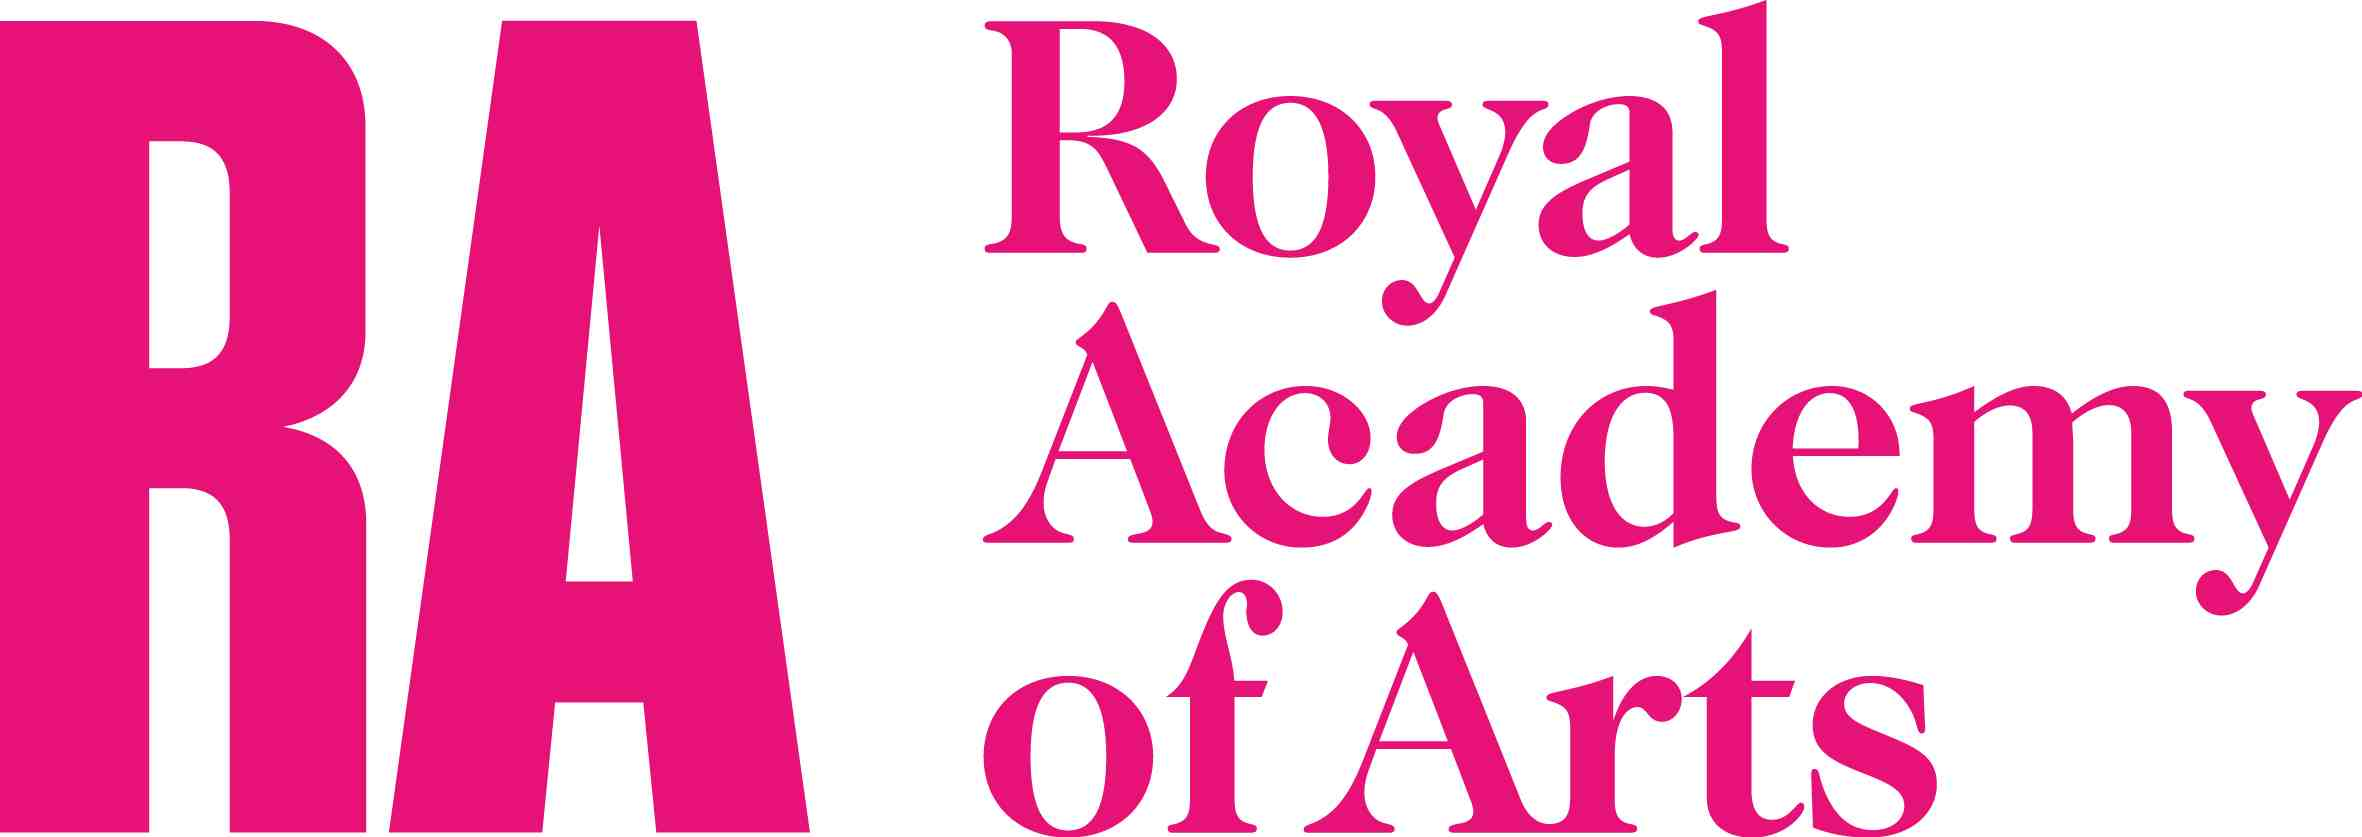 Royal-Academy-of-Arts-logo-lockup-213-copy.jpg